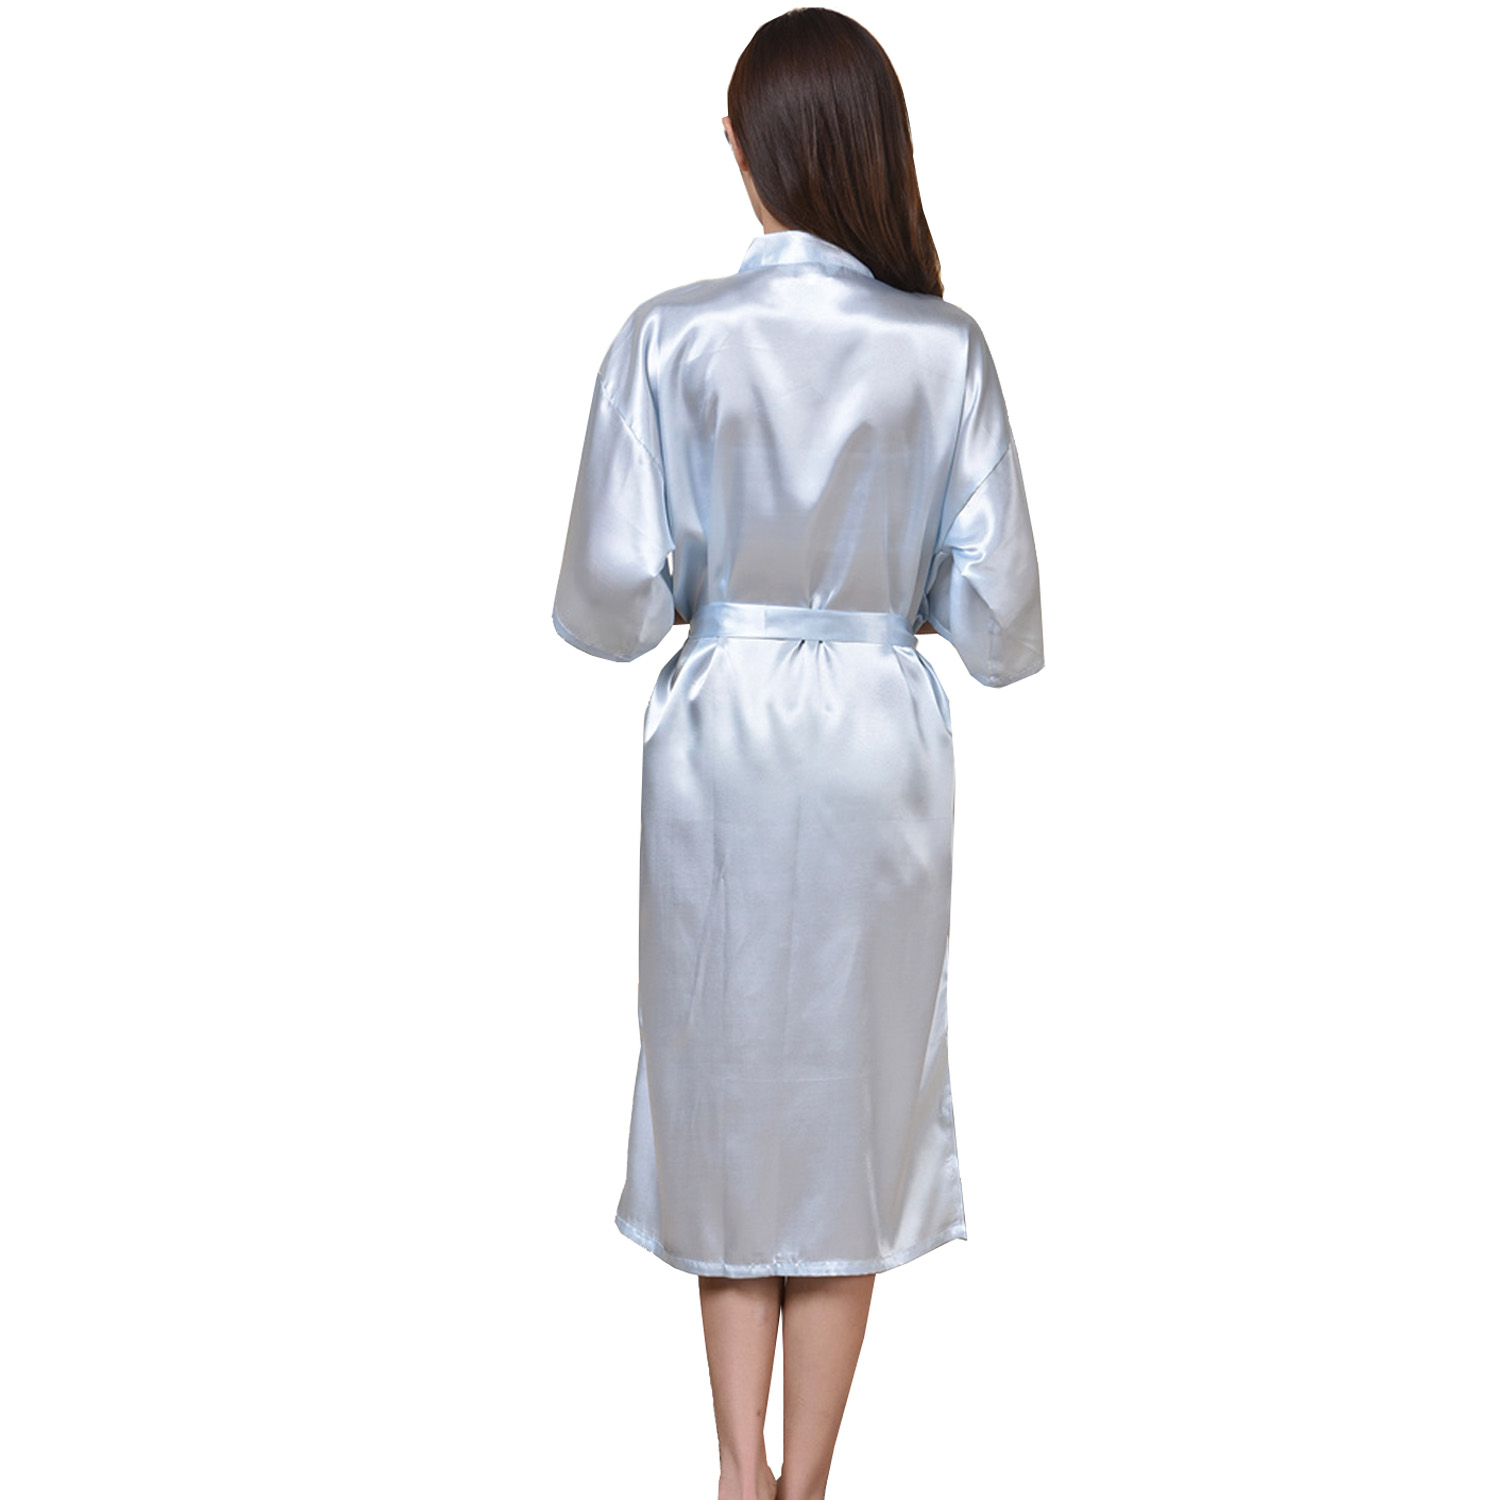 Customized Silk Satin Wedding Bride Bridesmaid Lace Trim Robes